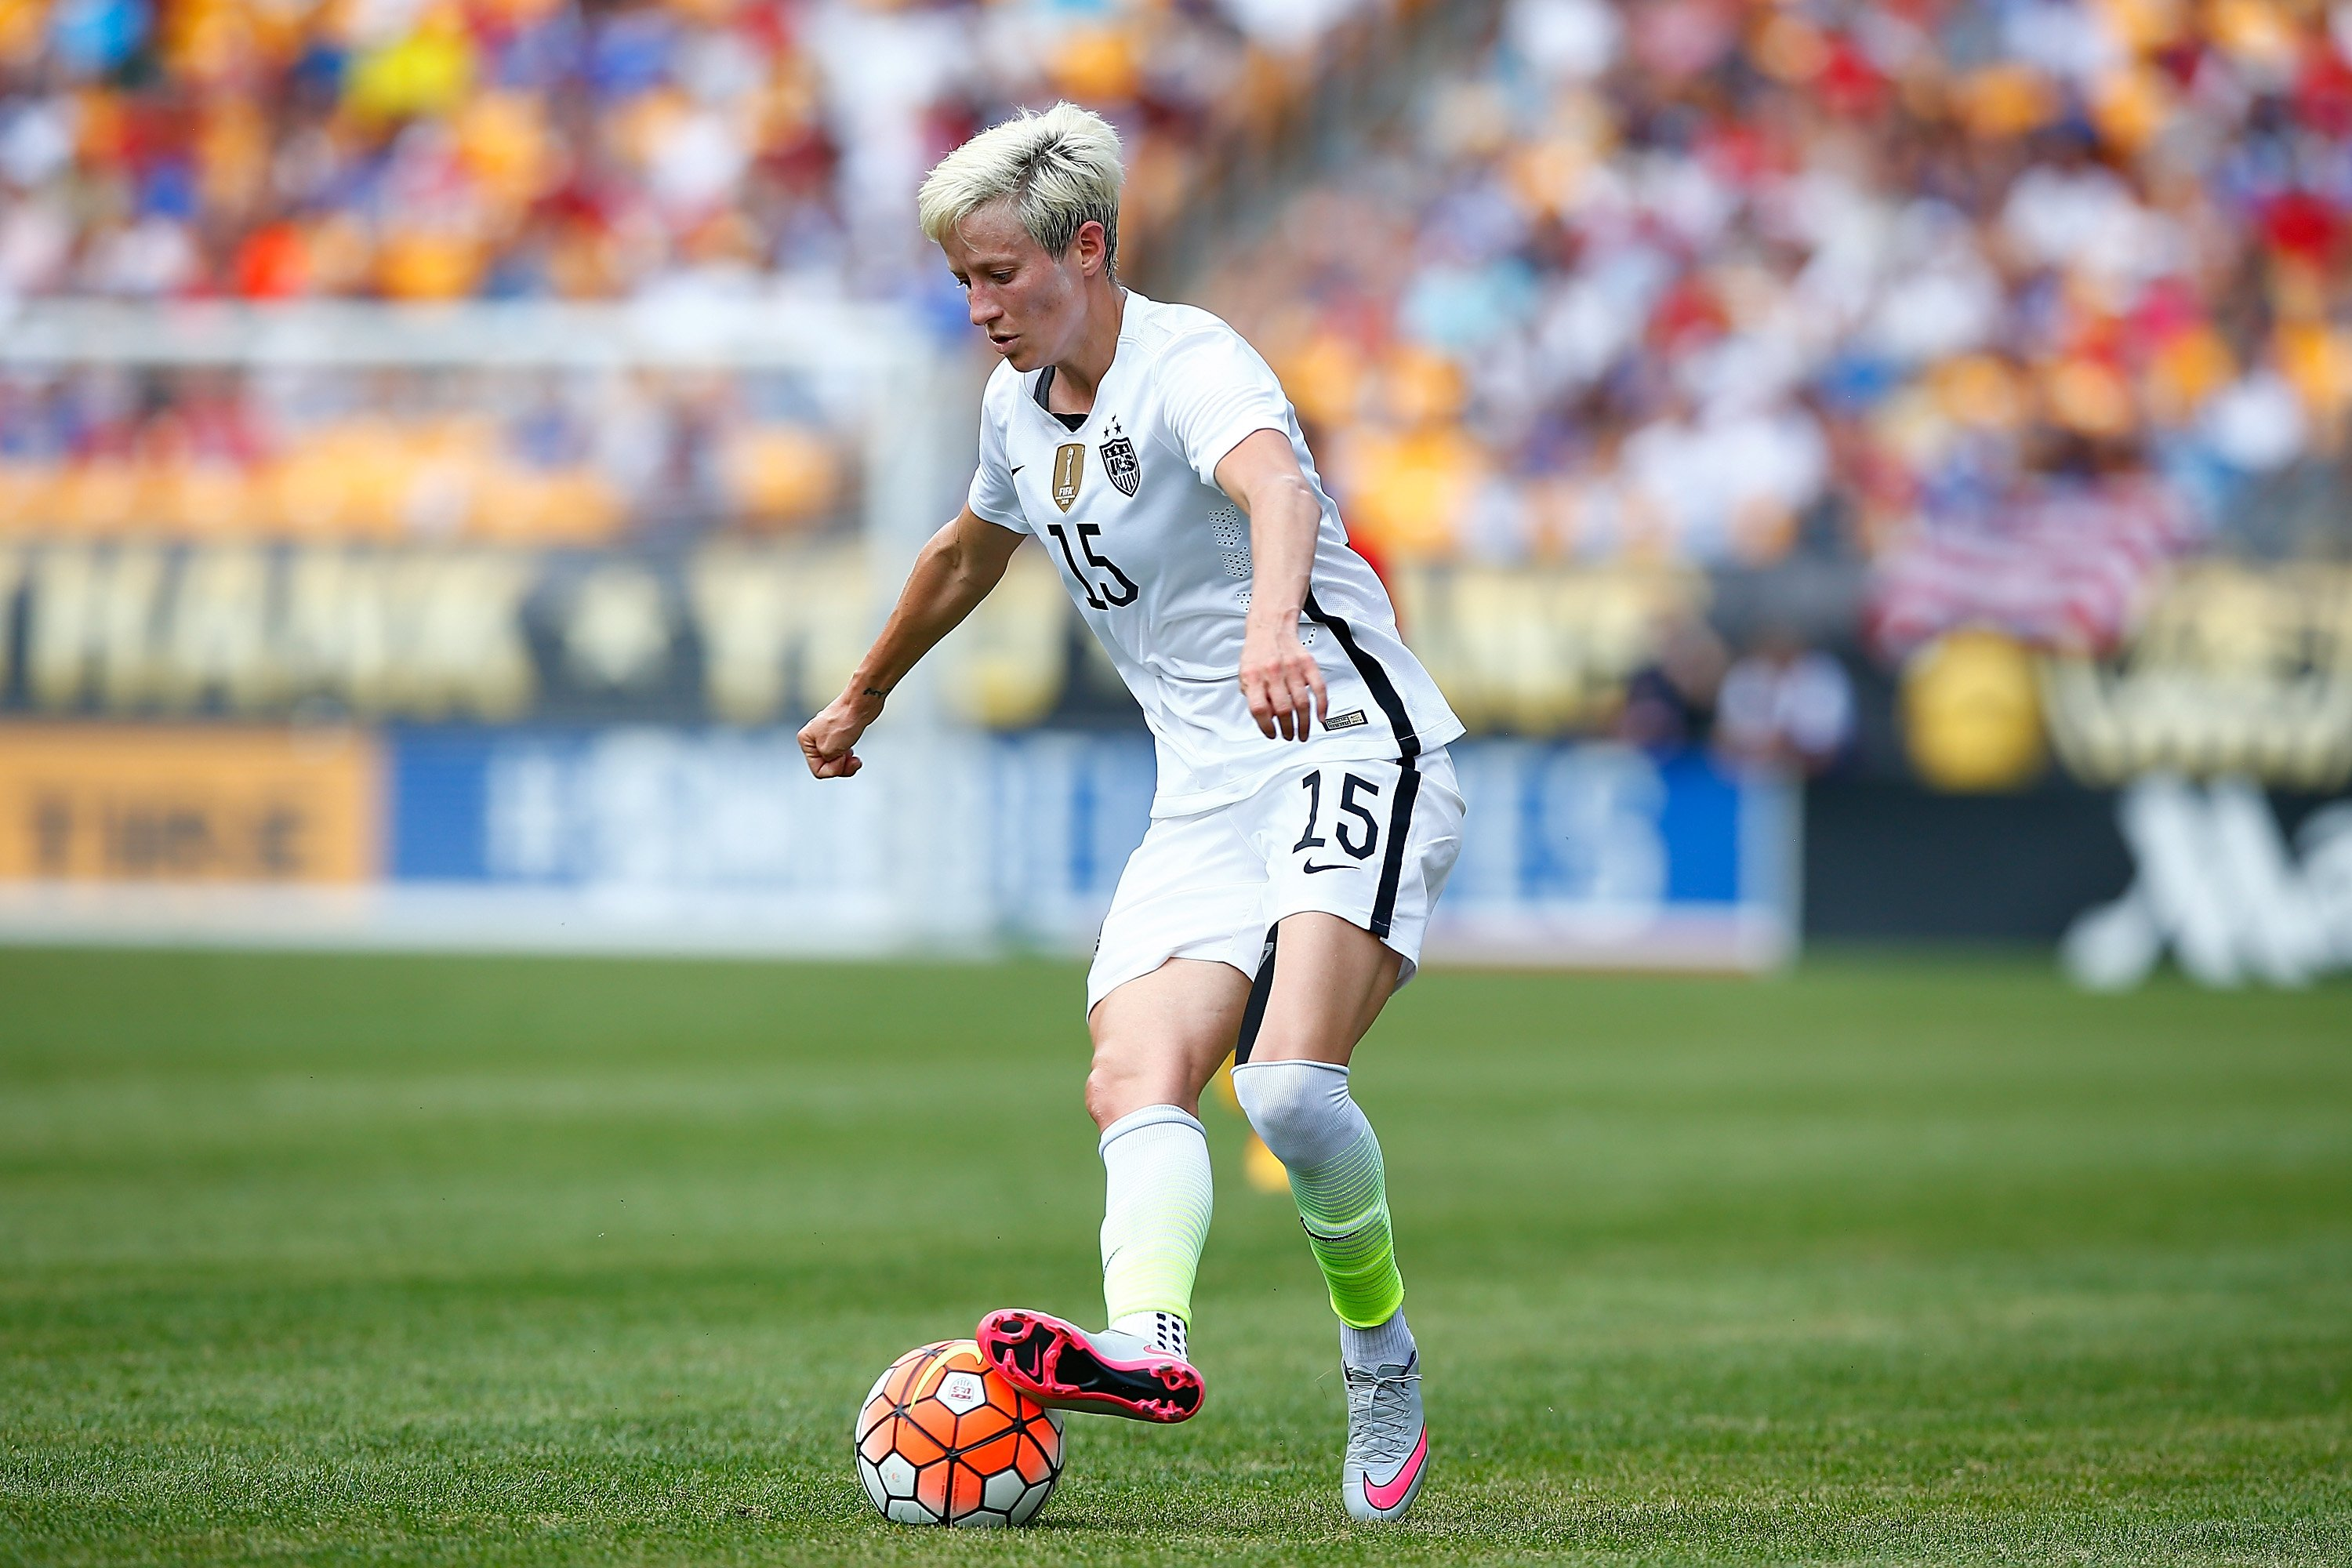 Megan Rapinoe of the United States. (Photo by Jared Wickerham/Getty Images)